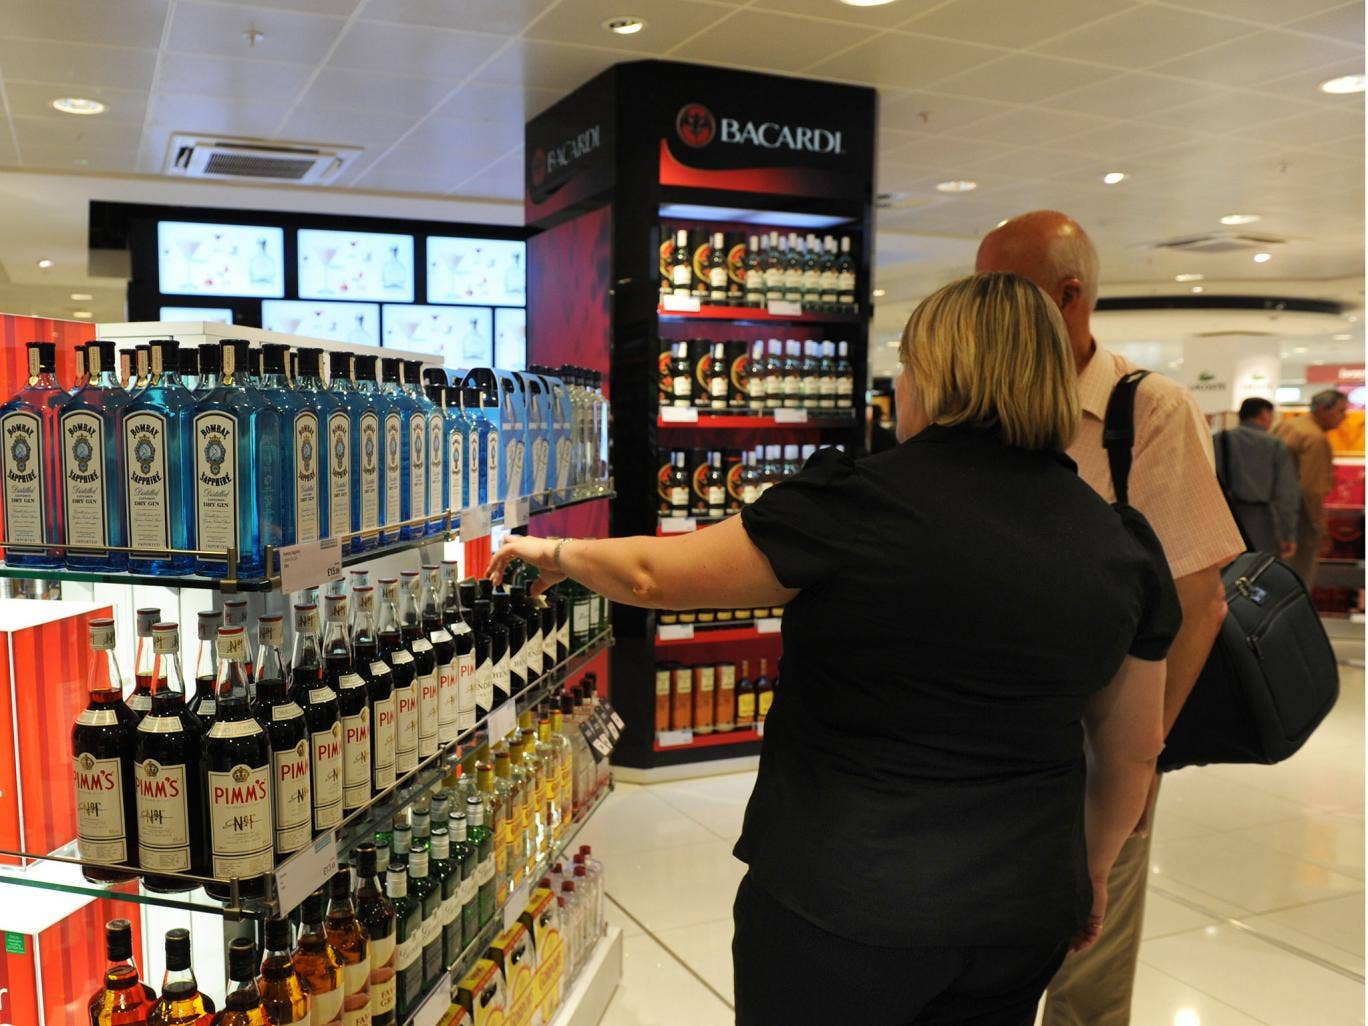 Airport Alcohol Rule Changes What You Need To Know About The New Still Diagram It Helps If Can Read Airports Facing Crackdown On How They Sell In Bid Reduce Incidents Of Drink Fuelled Air Rage